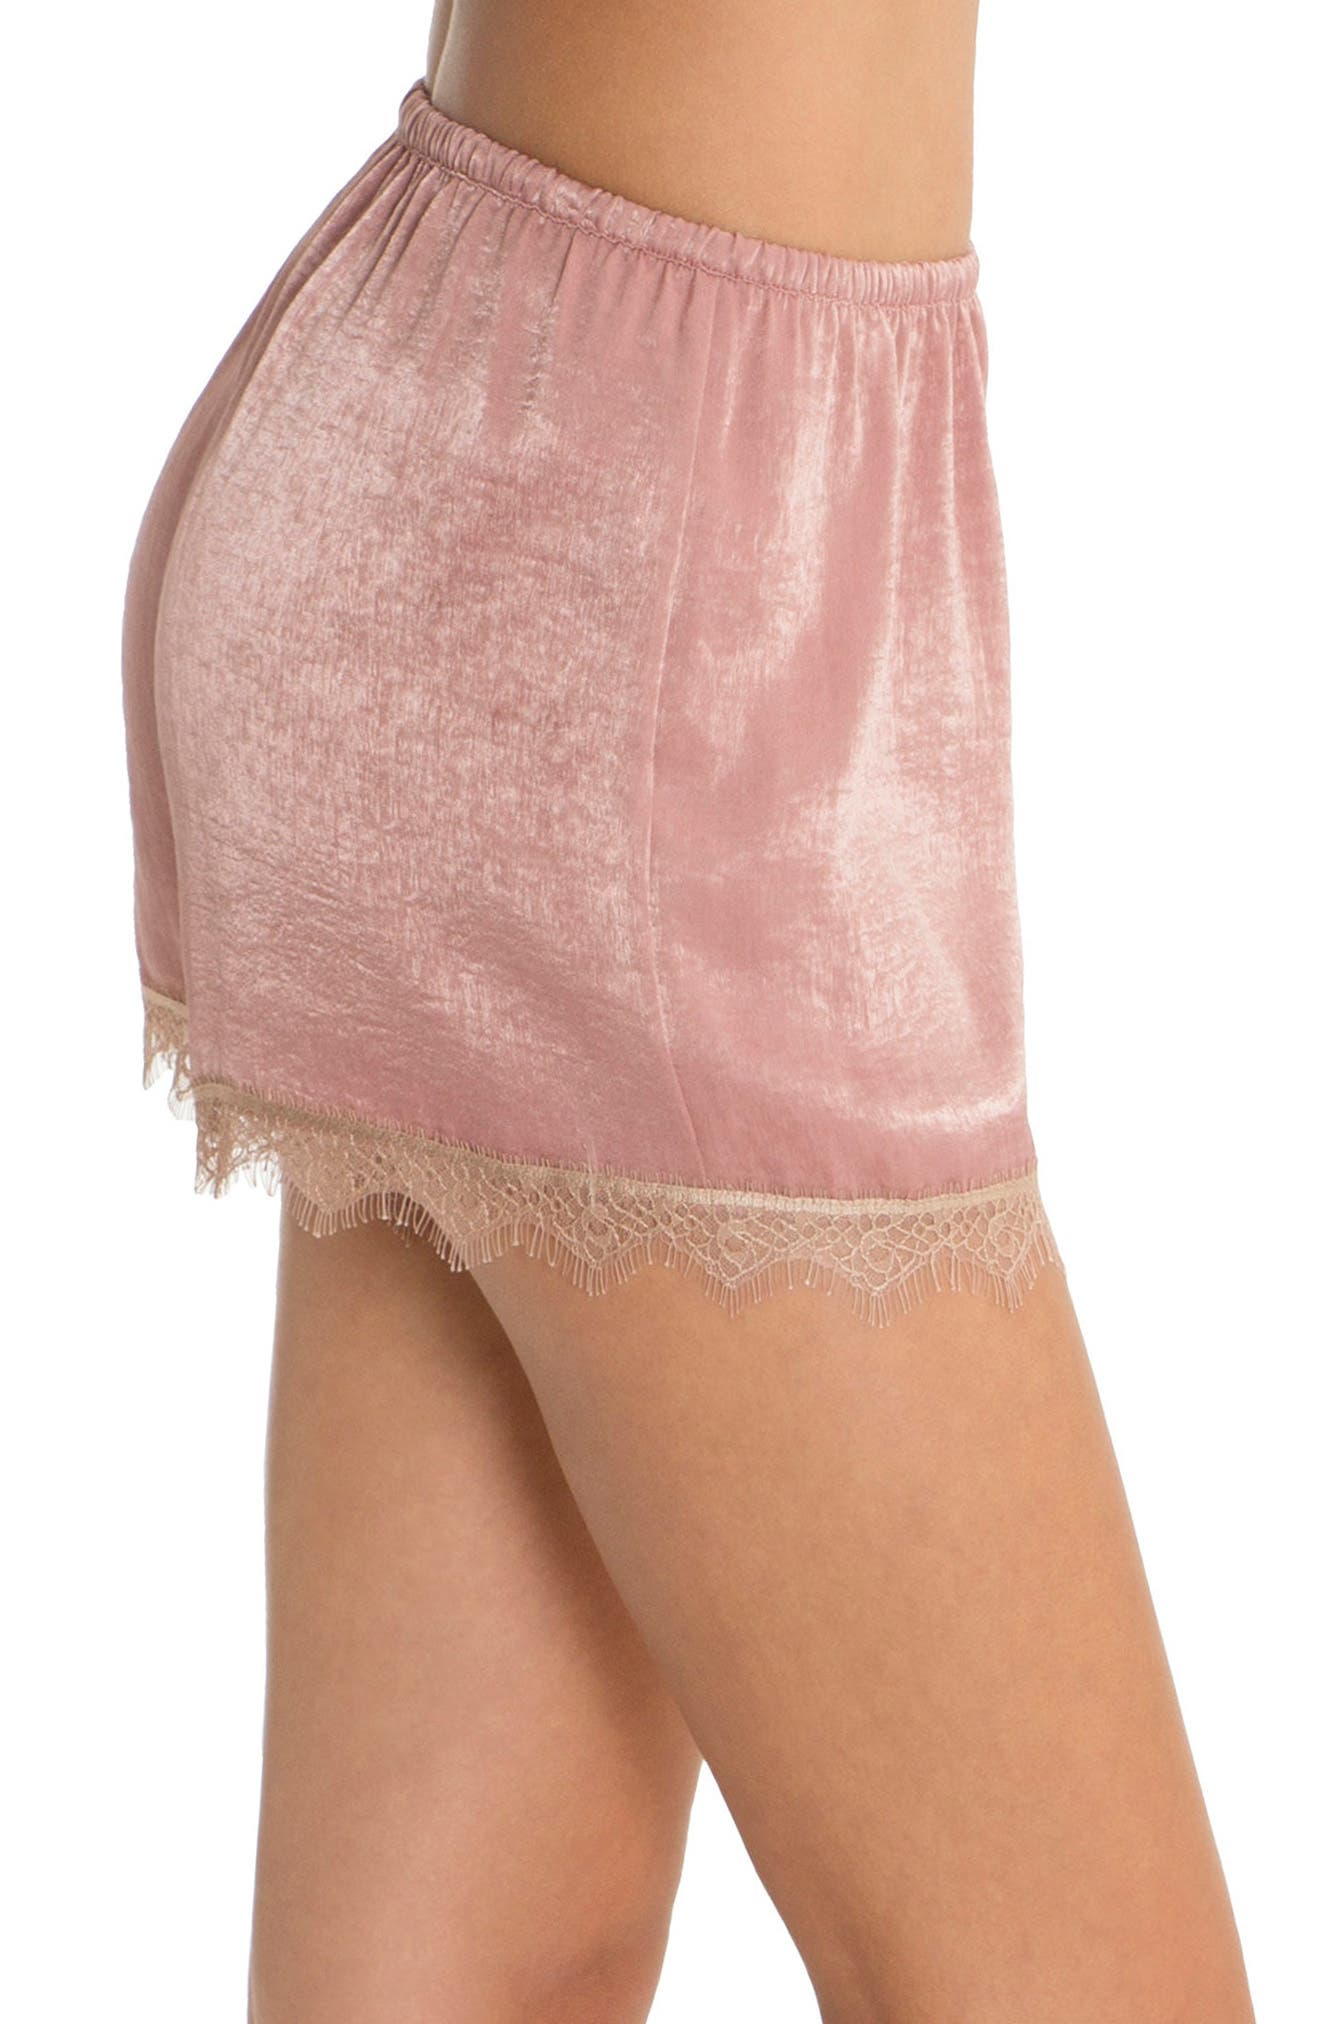 Satin Pajama Shorts,                             Alternate thumbnail 3, color,                             650